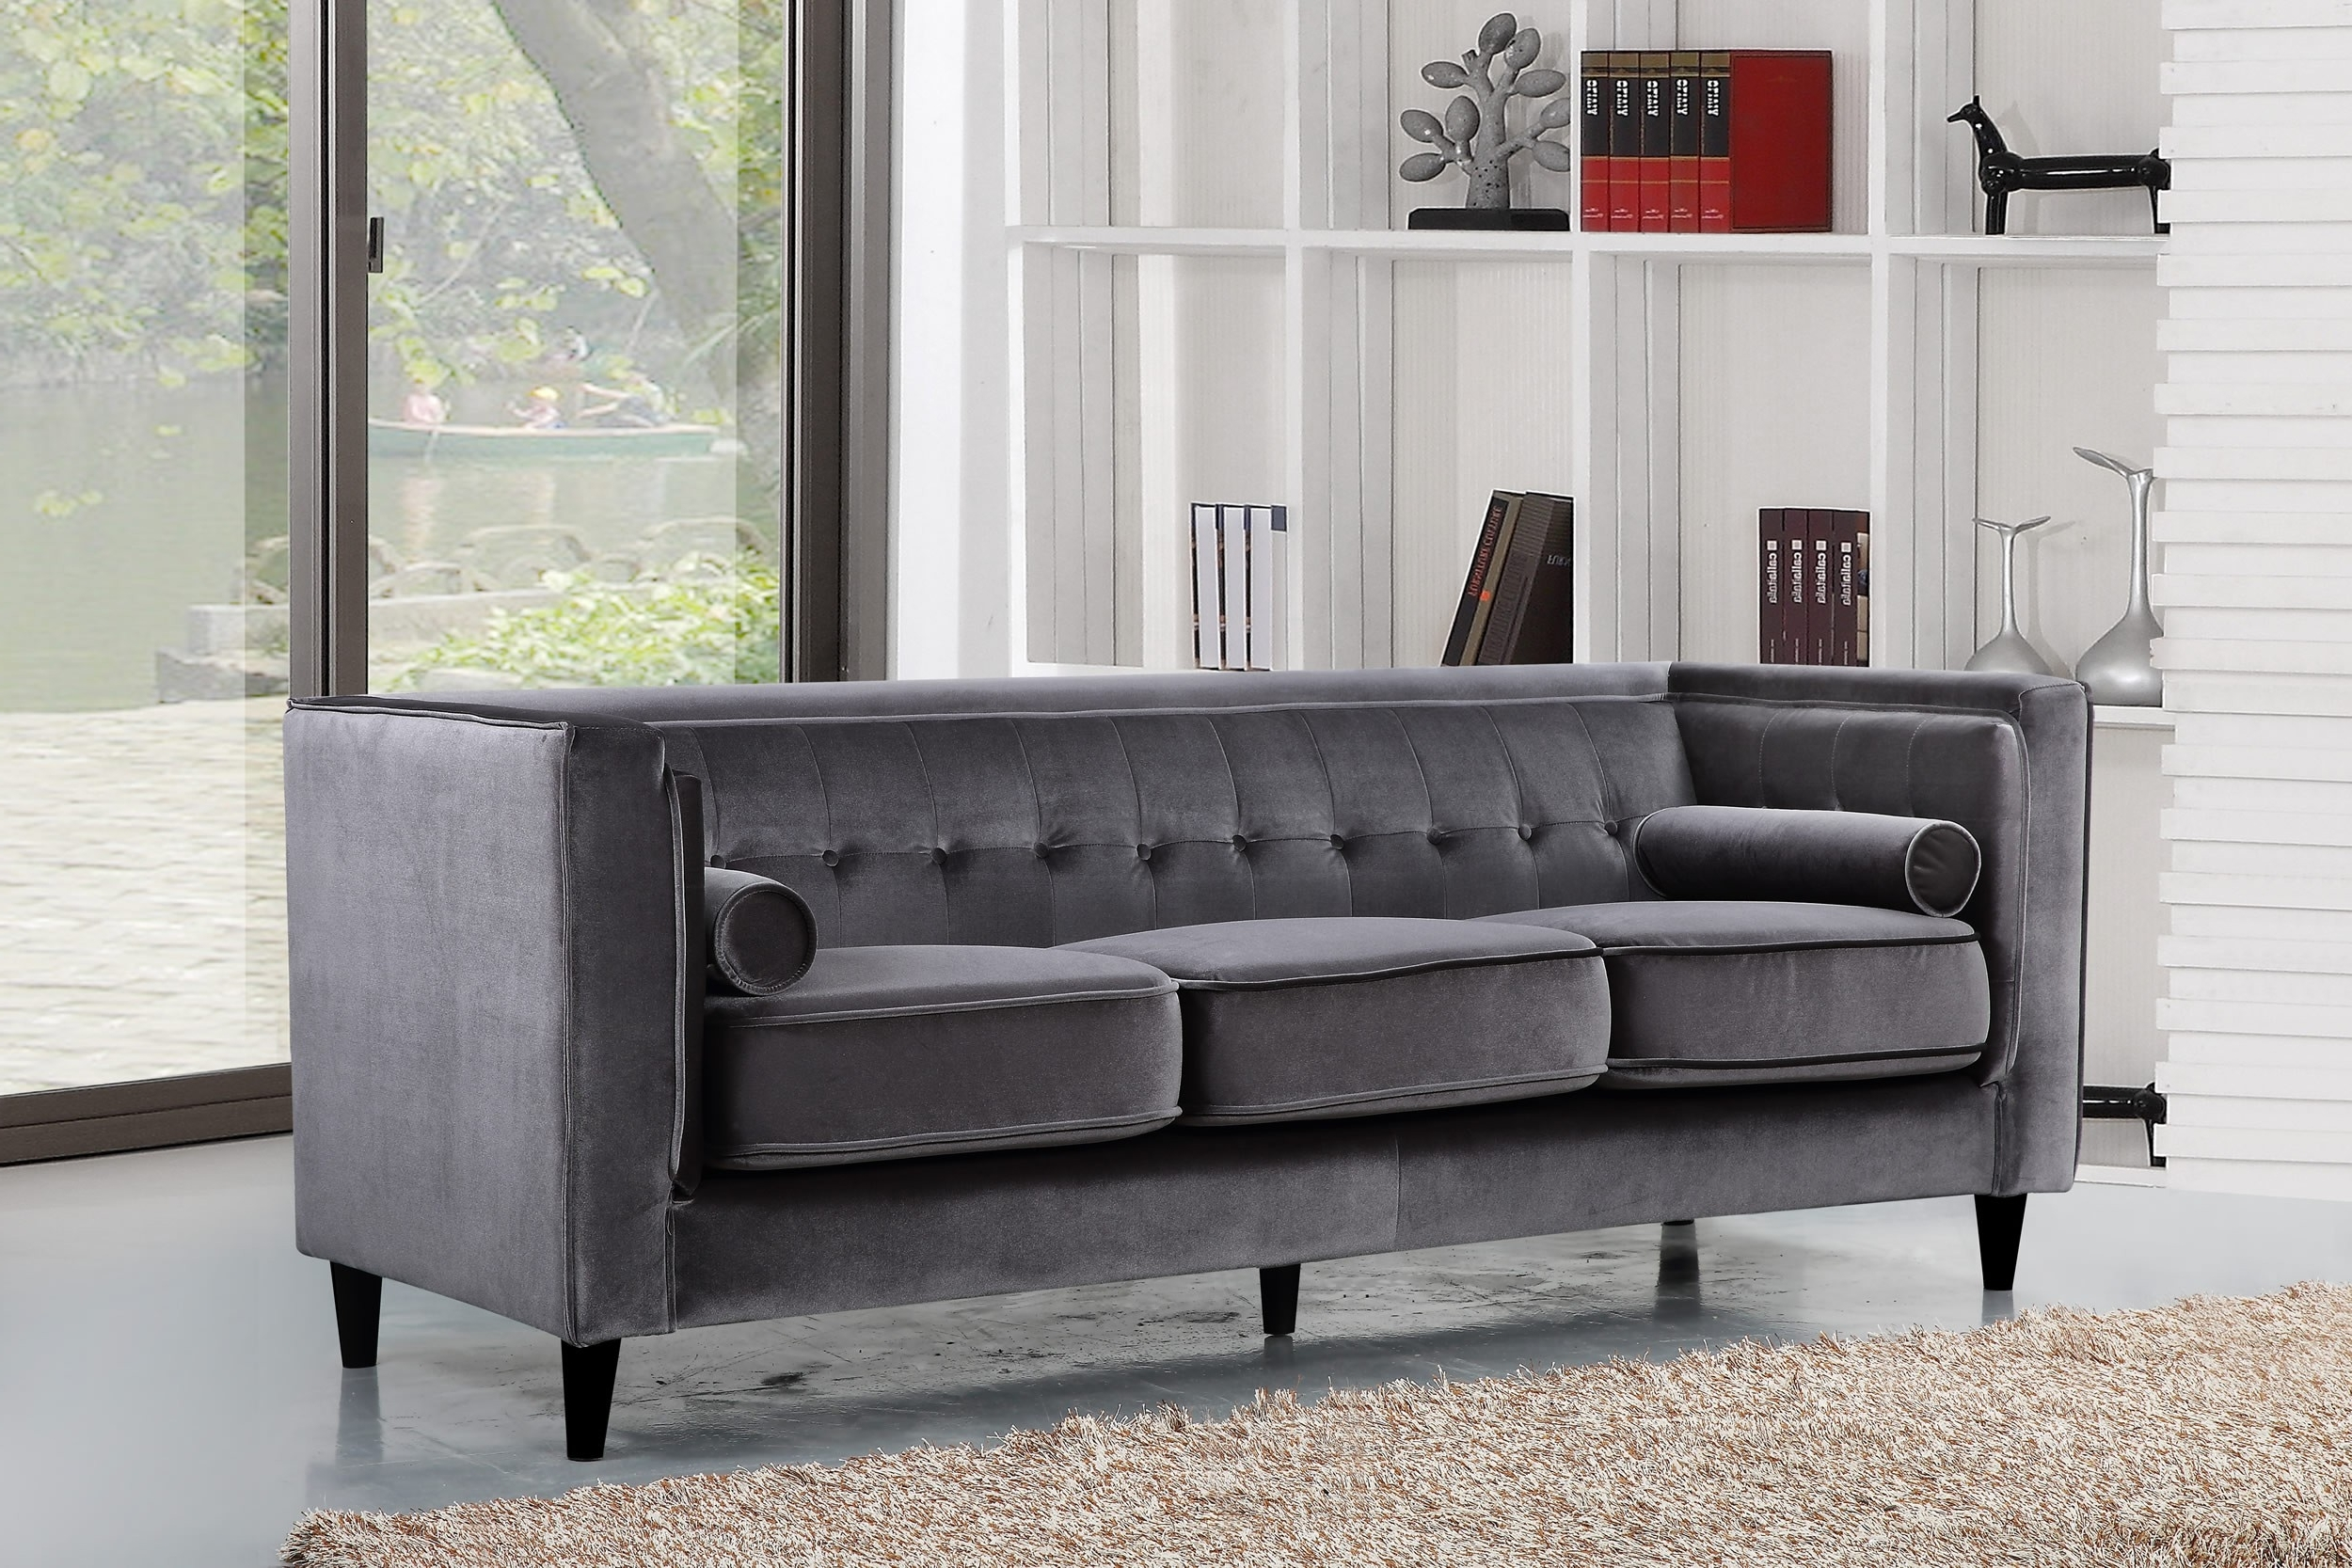 Taylor Velvet Sofa, Grey Buy Online At Best Price – Sohomod Intended For Widely Used Velvet Sofas (View 11 of 20)